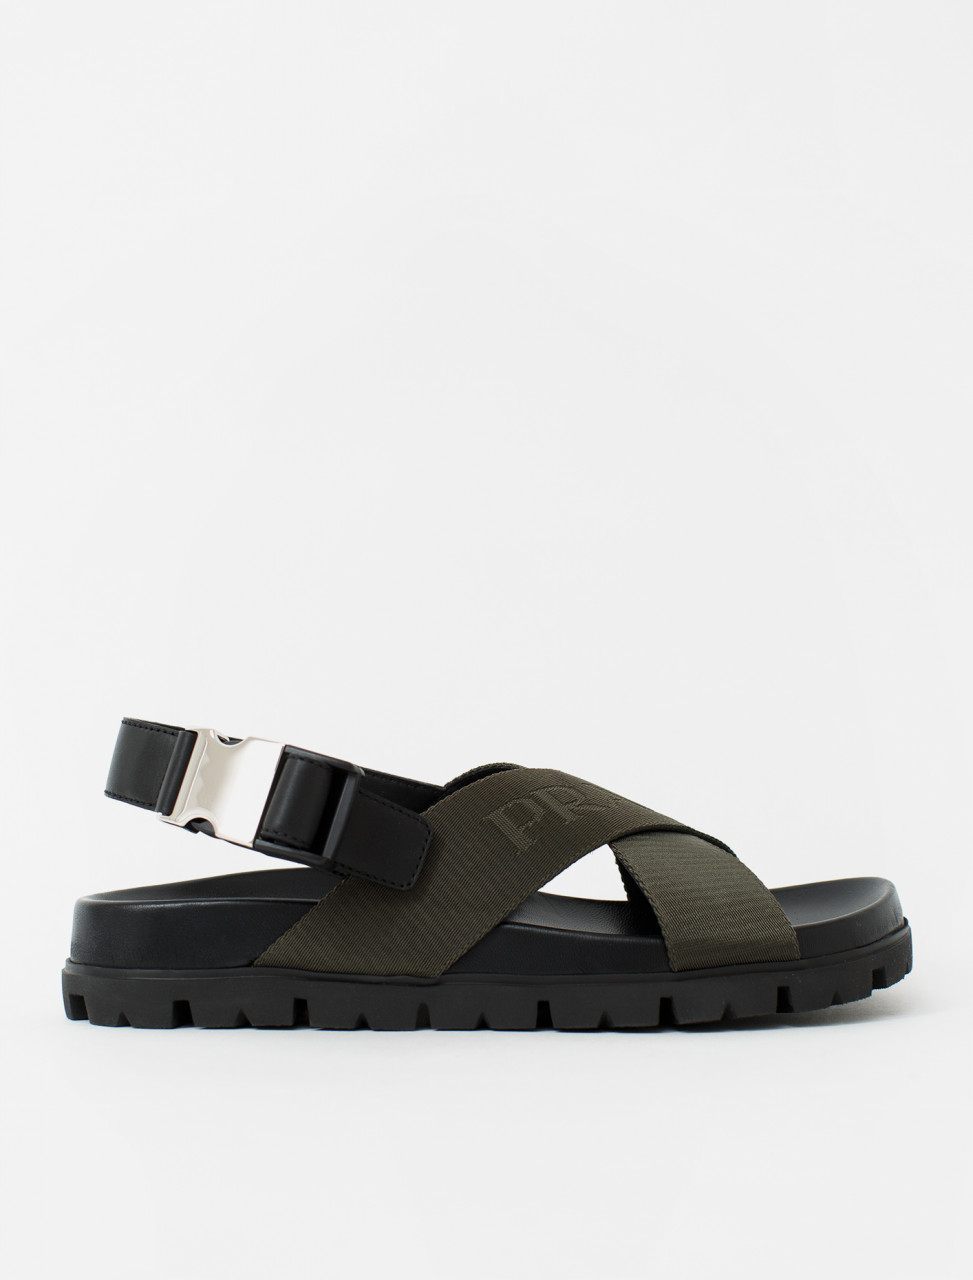 Nylon Sandals in Tundra